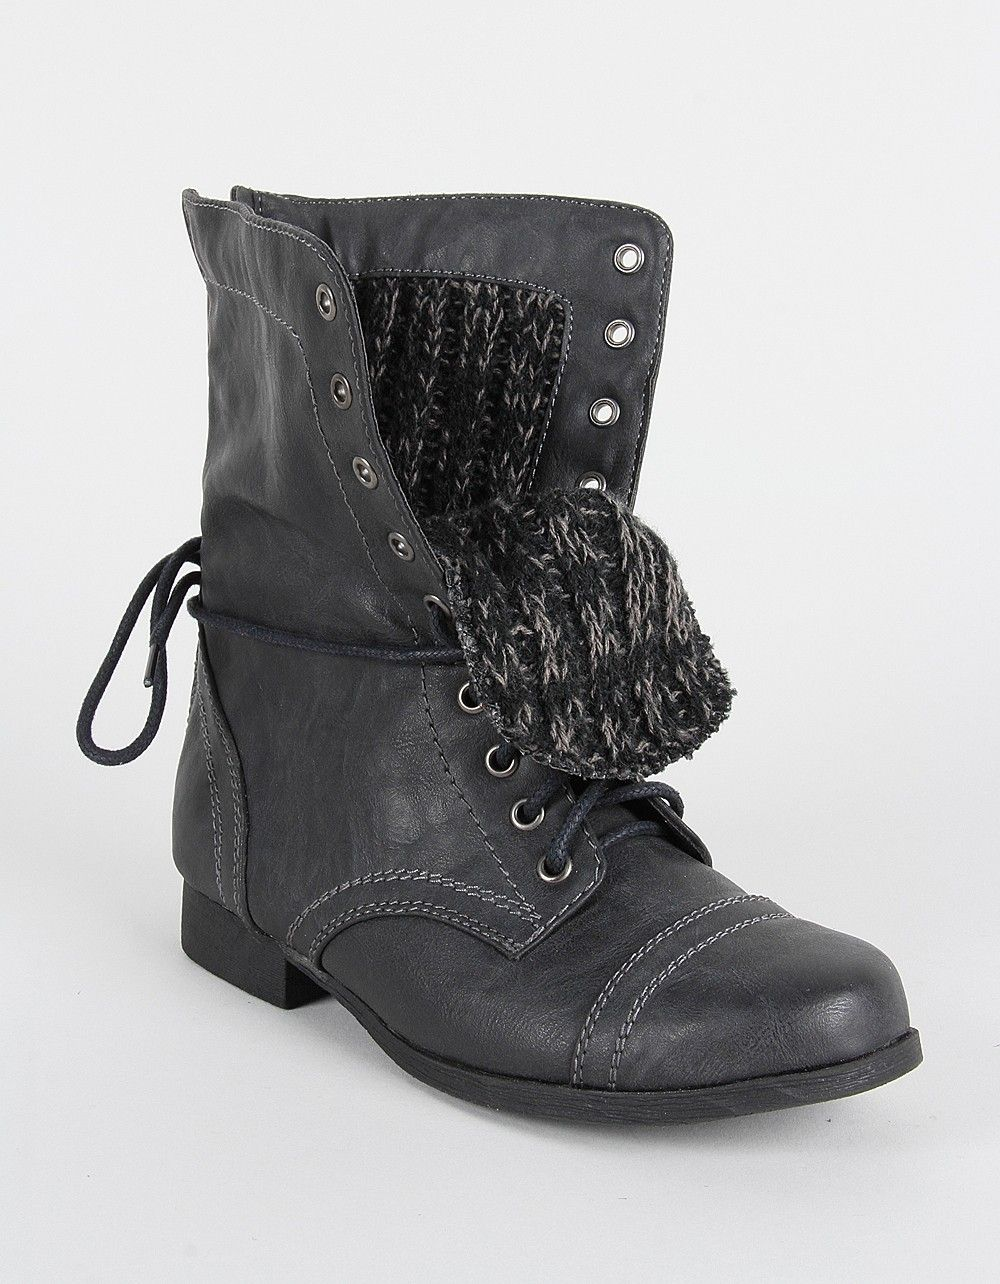 e38c77d5f61 Steve Madden fold down boots | My style | Ugg boots cheap, Shoes ...